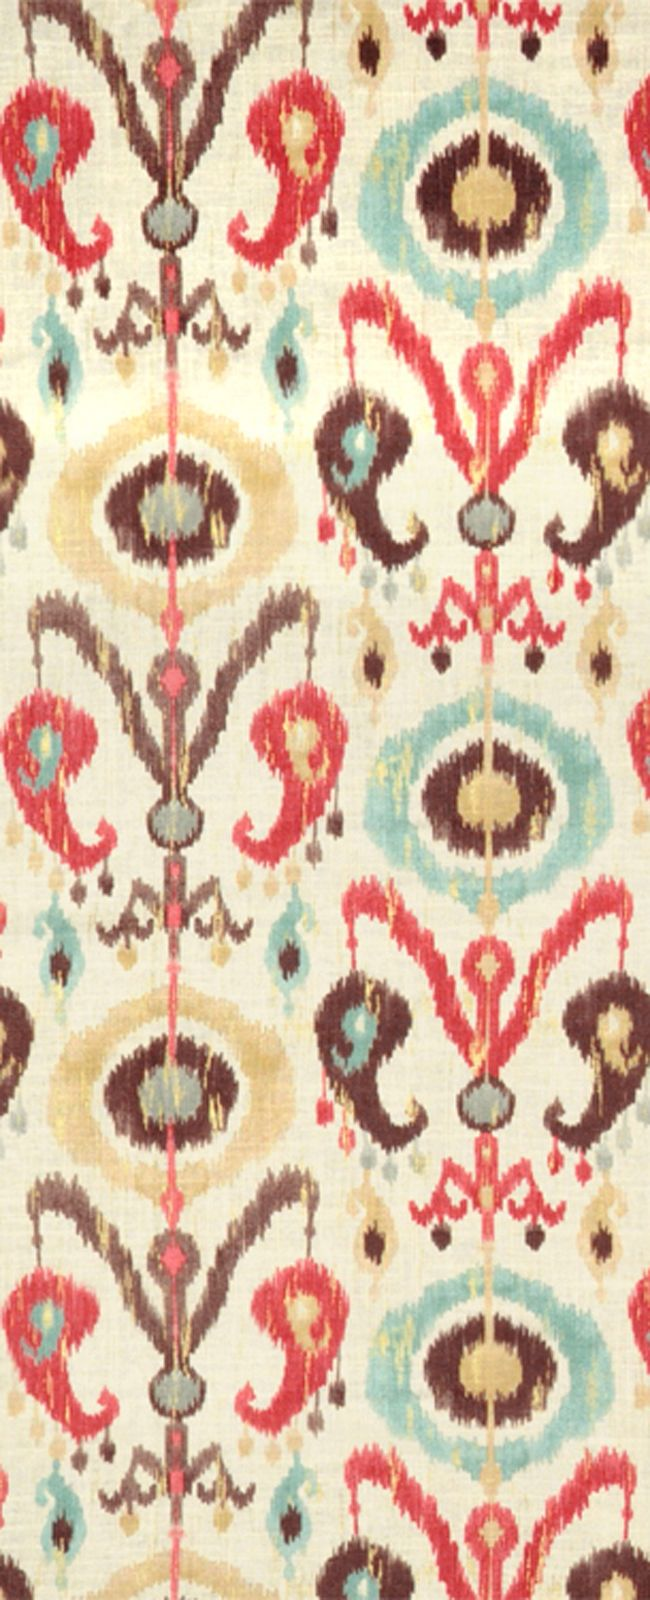 Best 25 Ikat Fabric Ideas On Pinterest Ikat Ikat Home Decorators Catalog Best Ideas of Home Decor and Design [homedecoratorscatalog.us]